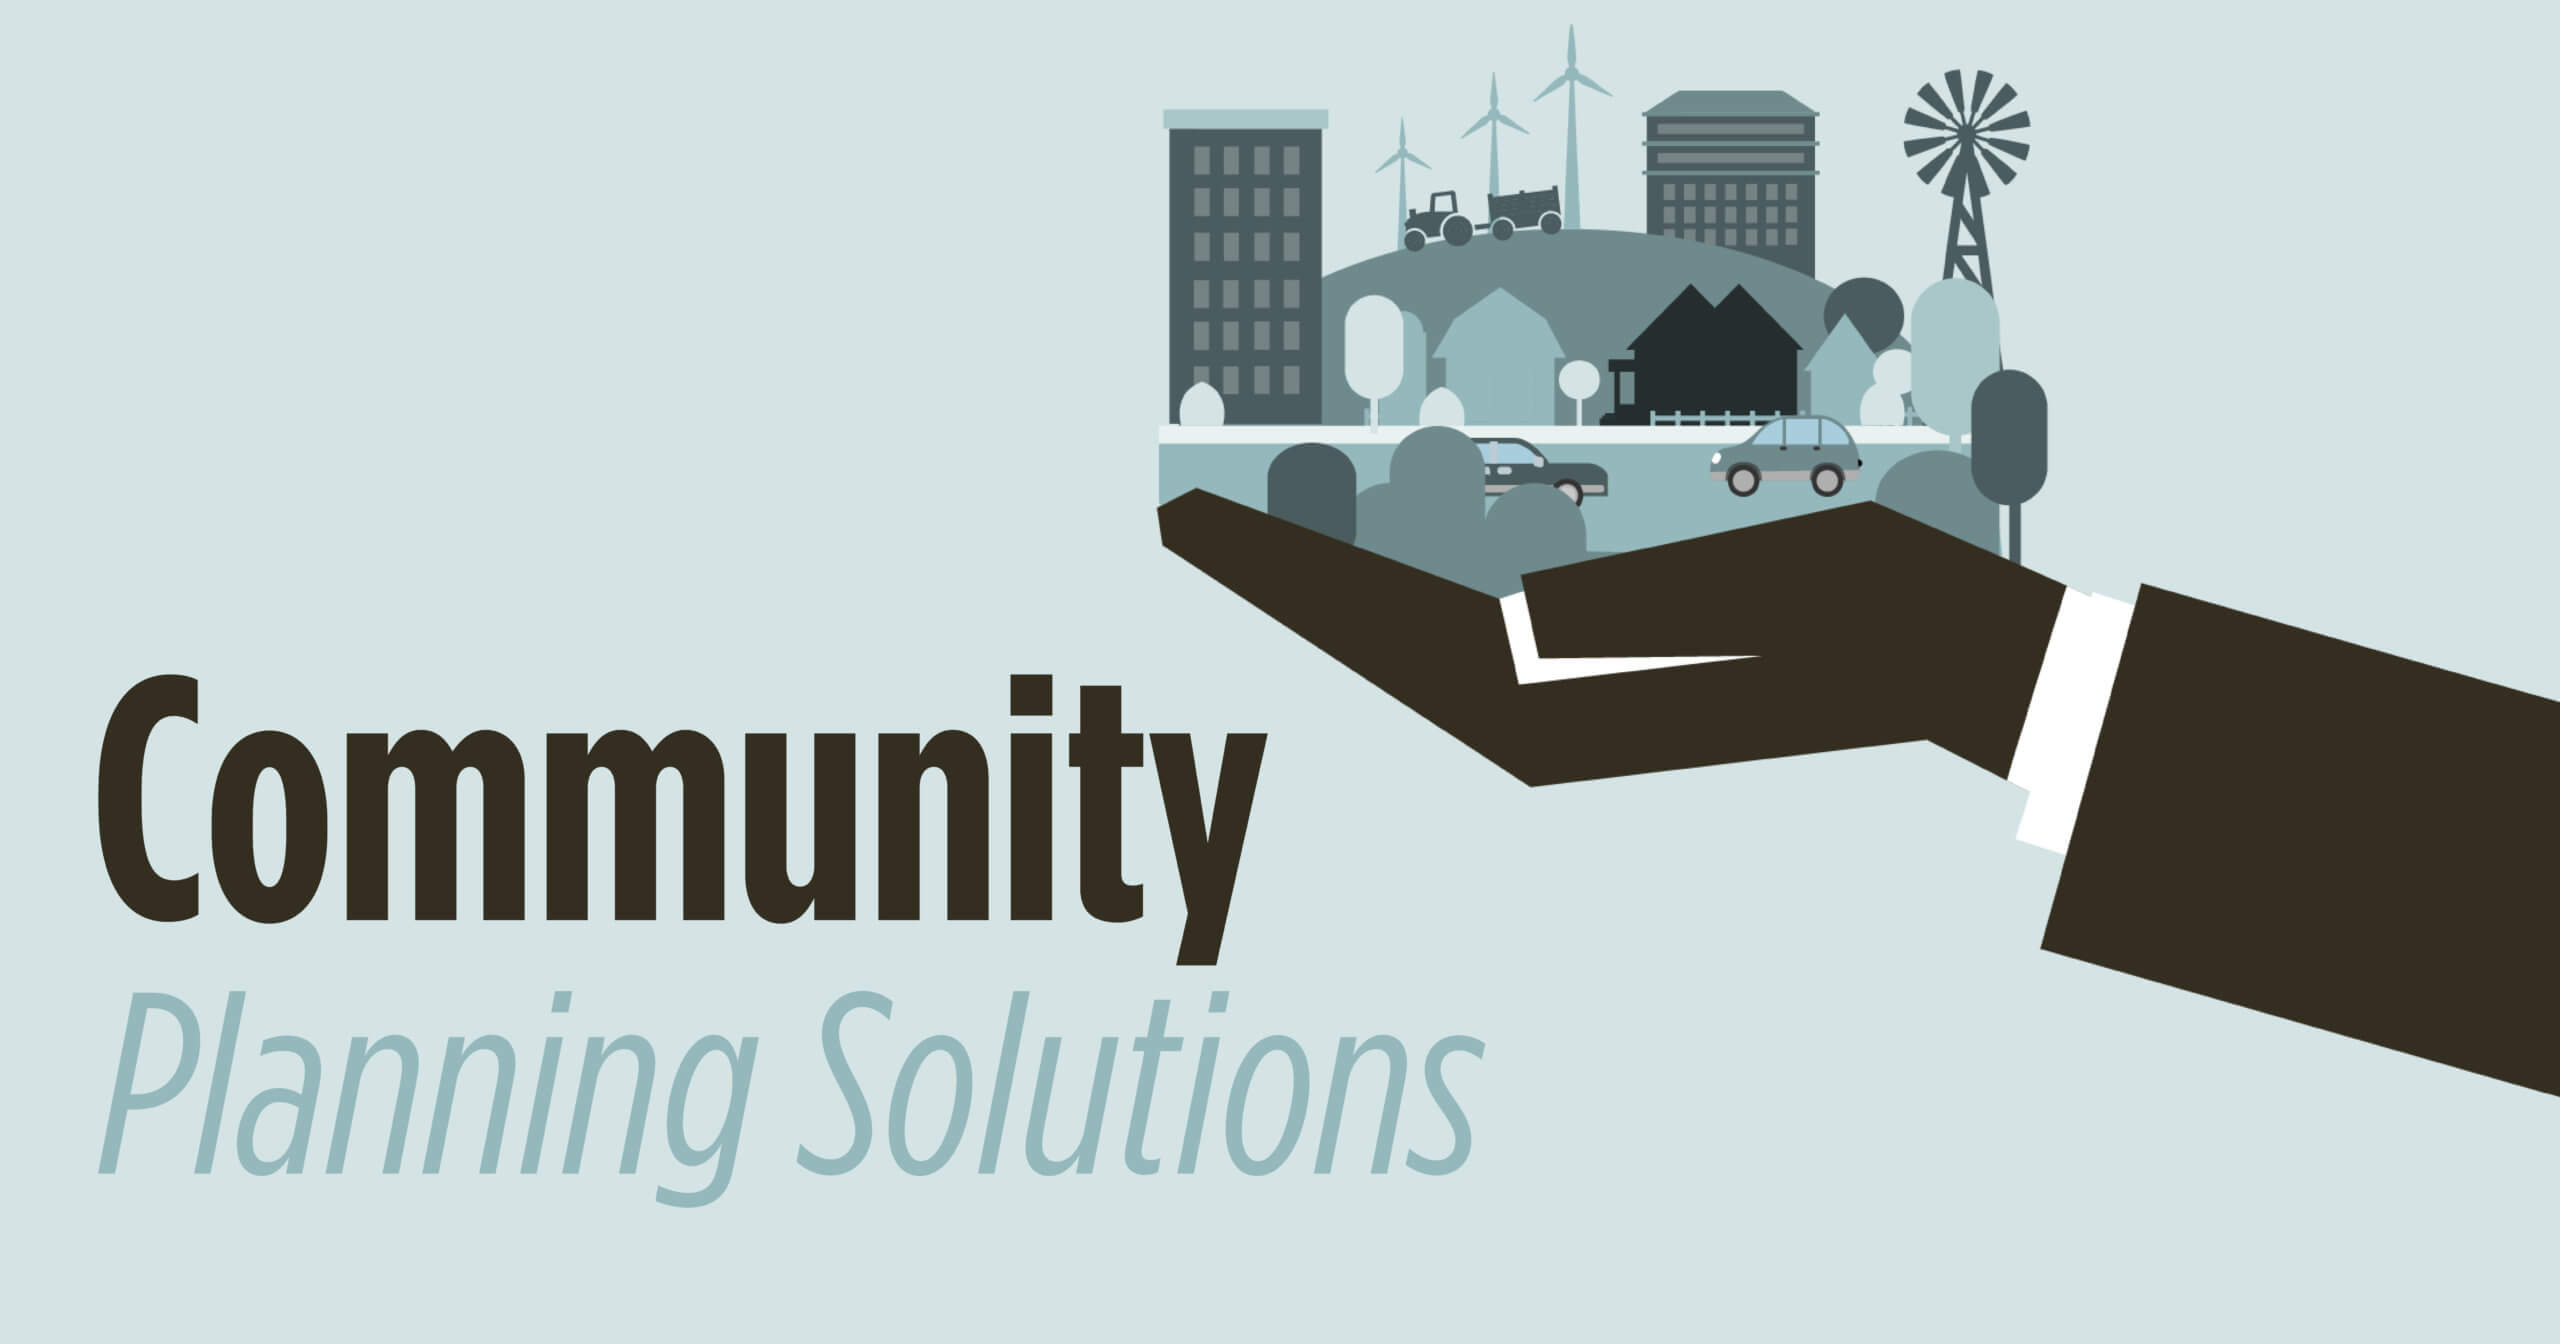 Smart Community Planning Solutions in Times of Adversity